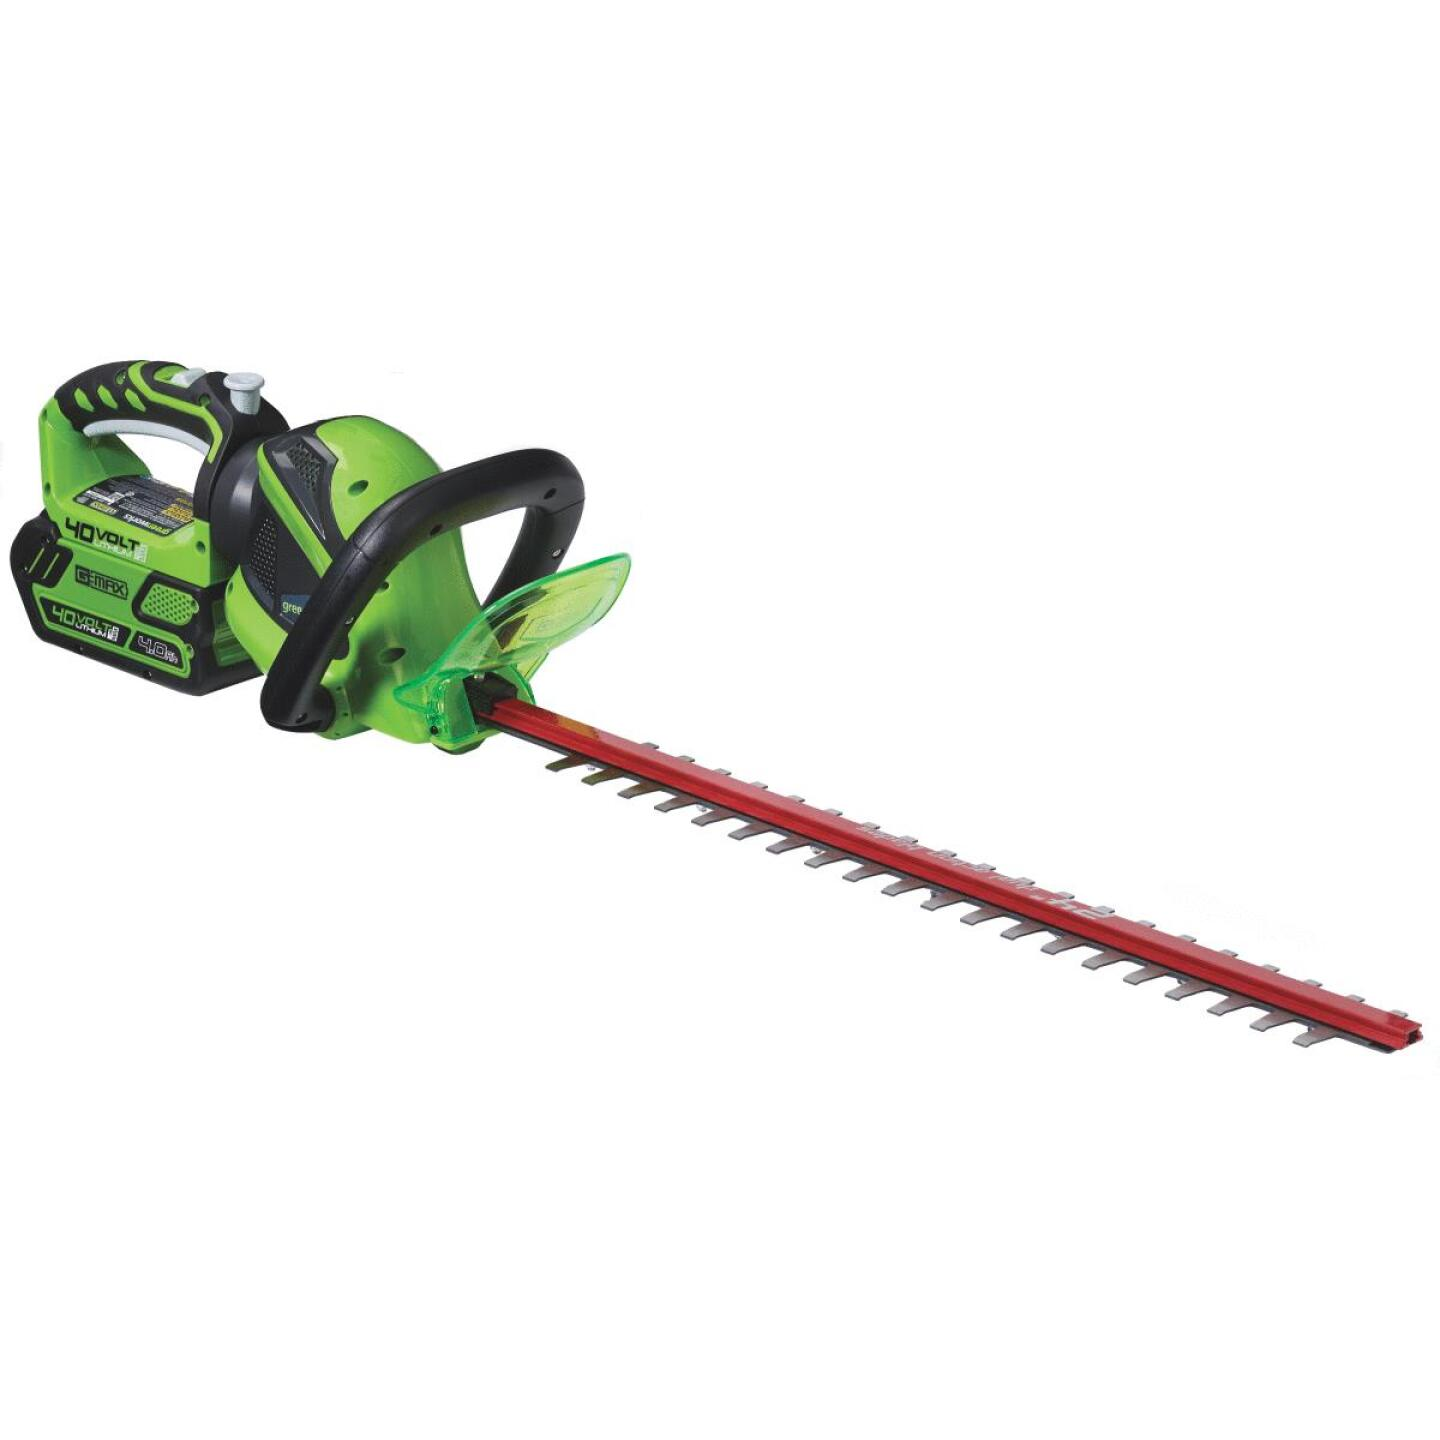 Greenworks G-Max 24 In. 40V Lithium Ion Cordless Hedge Trimmer (Bare Tool) Image 5